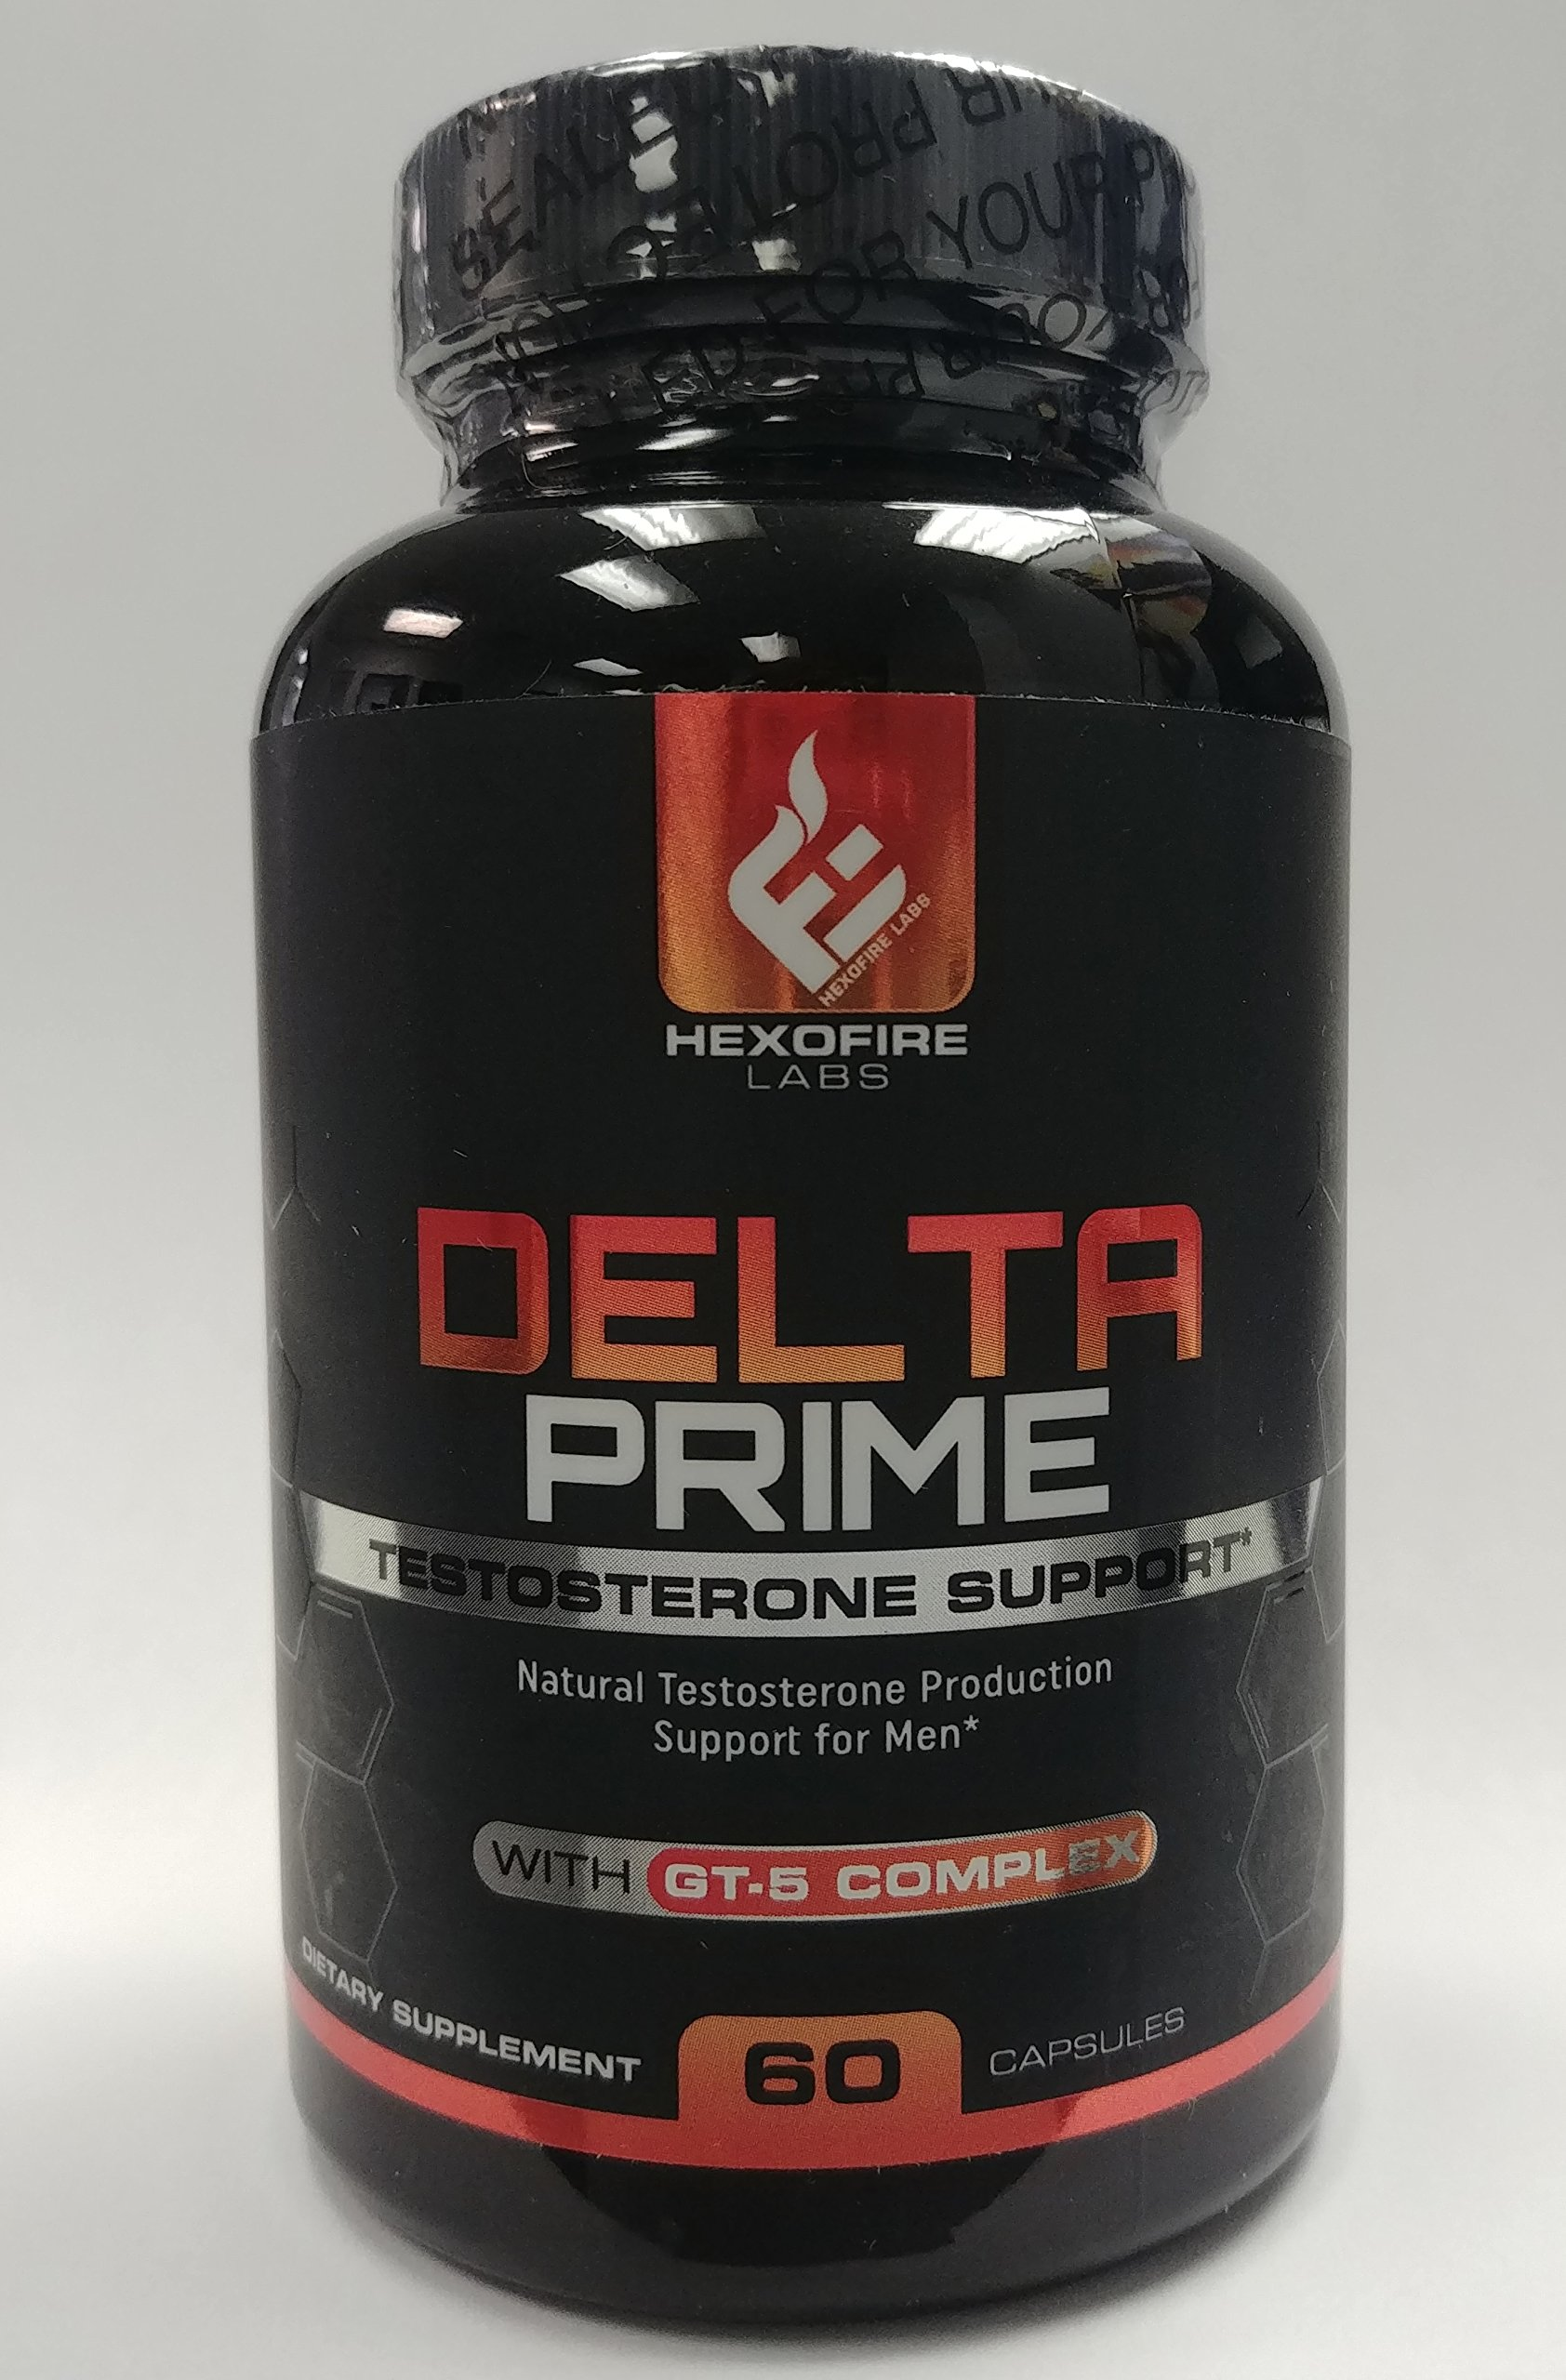 HexoFire Labs Delta Prime, Delta Prime Testosterone Production Support Capsules with Vitamin D Zinc & GT-5 Herbal Blend, 60 Capsules (30 Day Supply) by HexoFire Labs (Image #2)